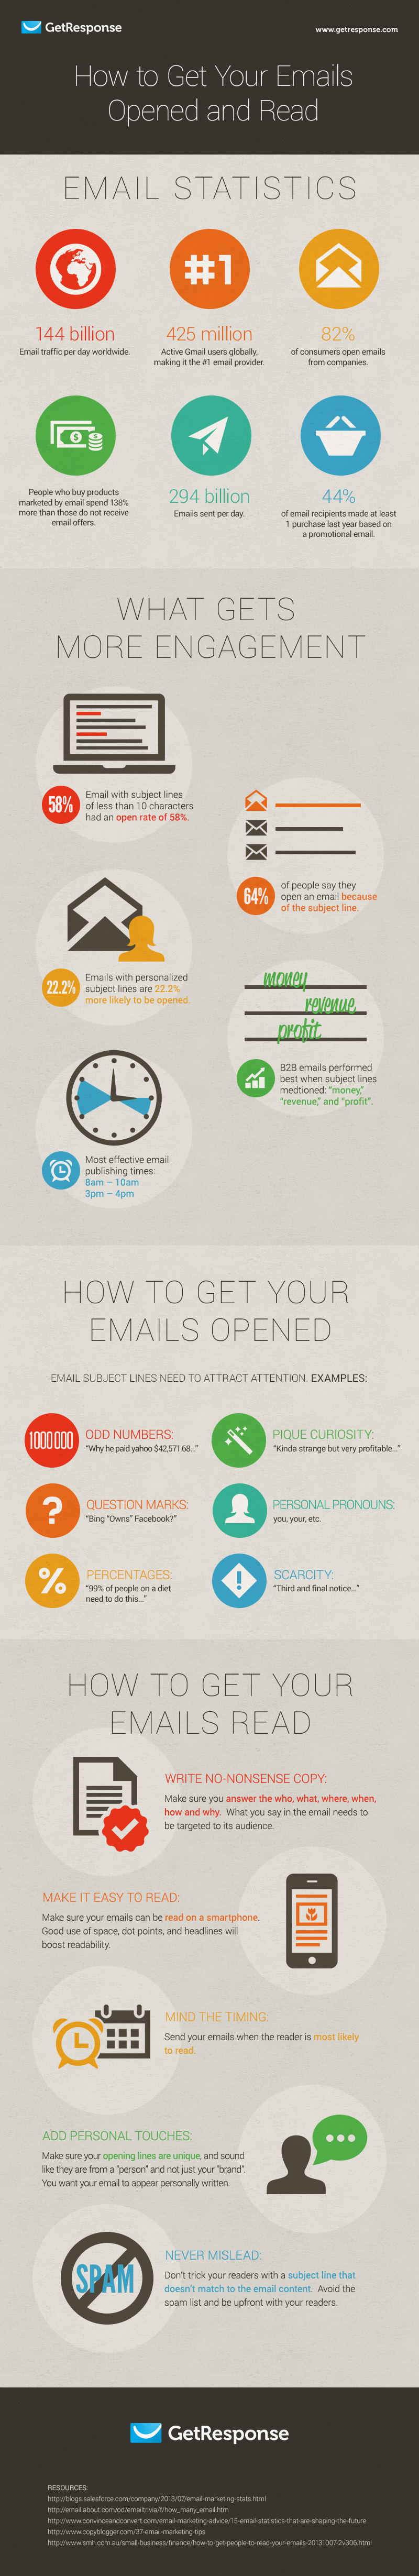 InfoGraphic - How To Get Your Emails Opened And Read